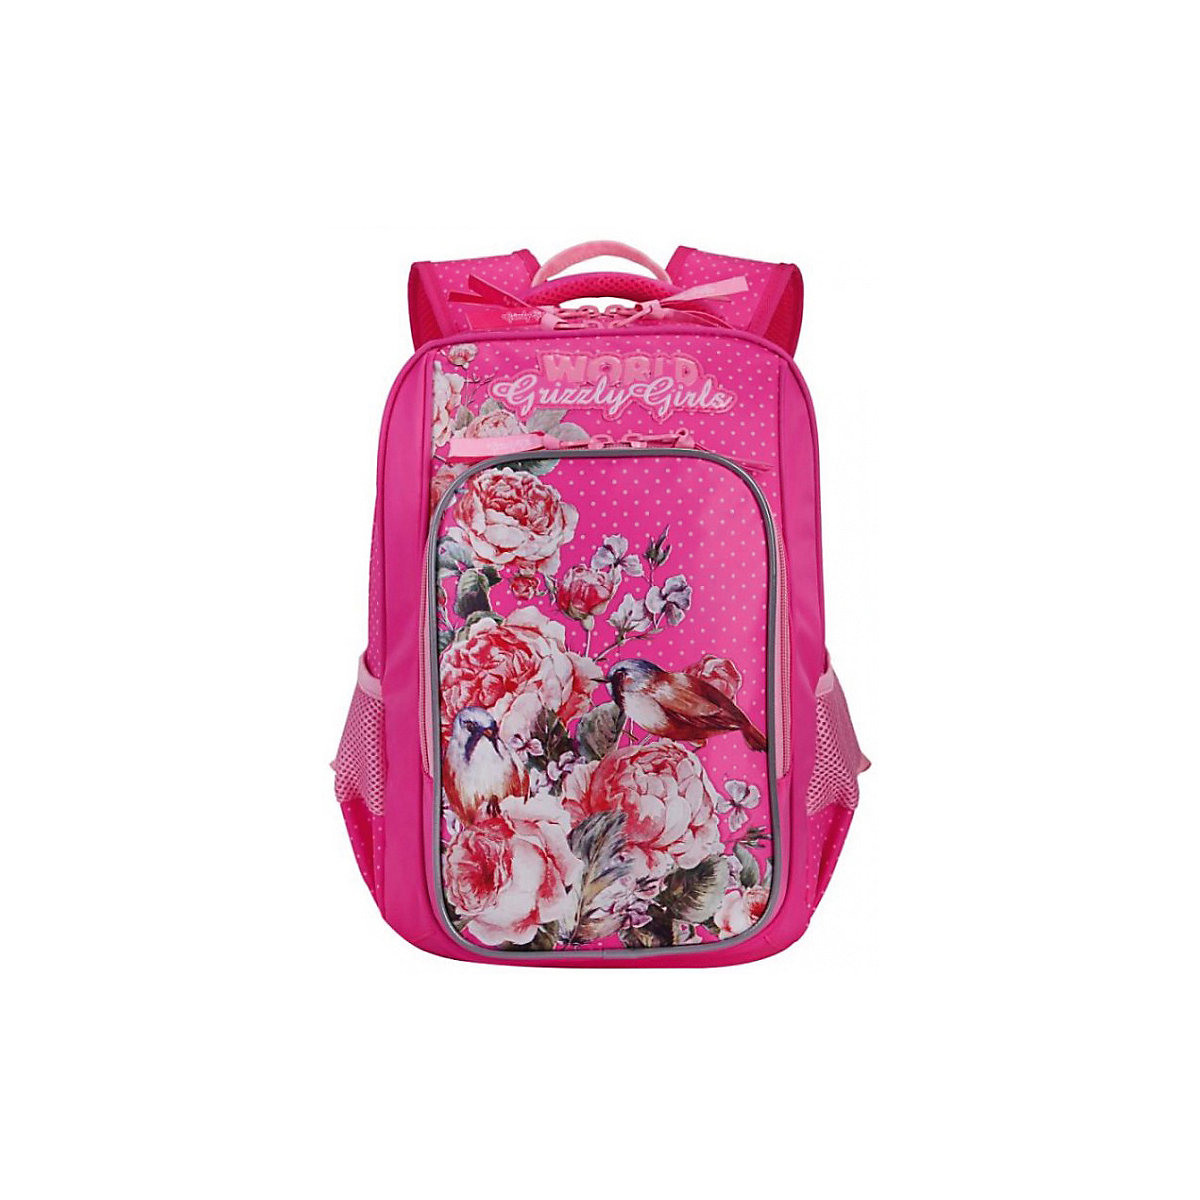 School Bags GRIZZLY 8333898 Schoolbag Backpack Orthopedic Bag For Boy And Girl Animals Flowers MTpromo